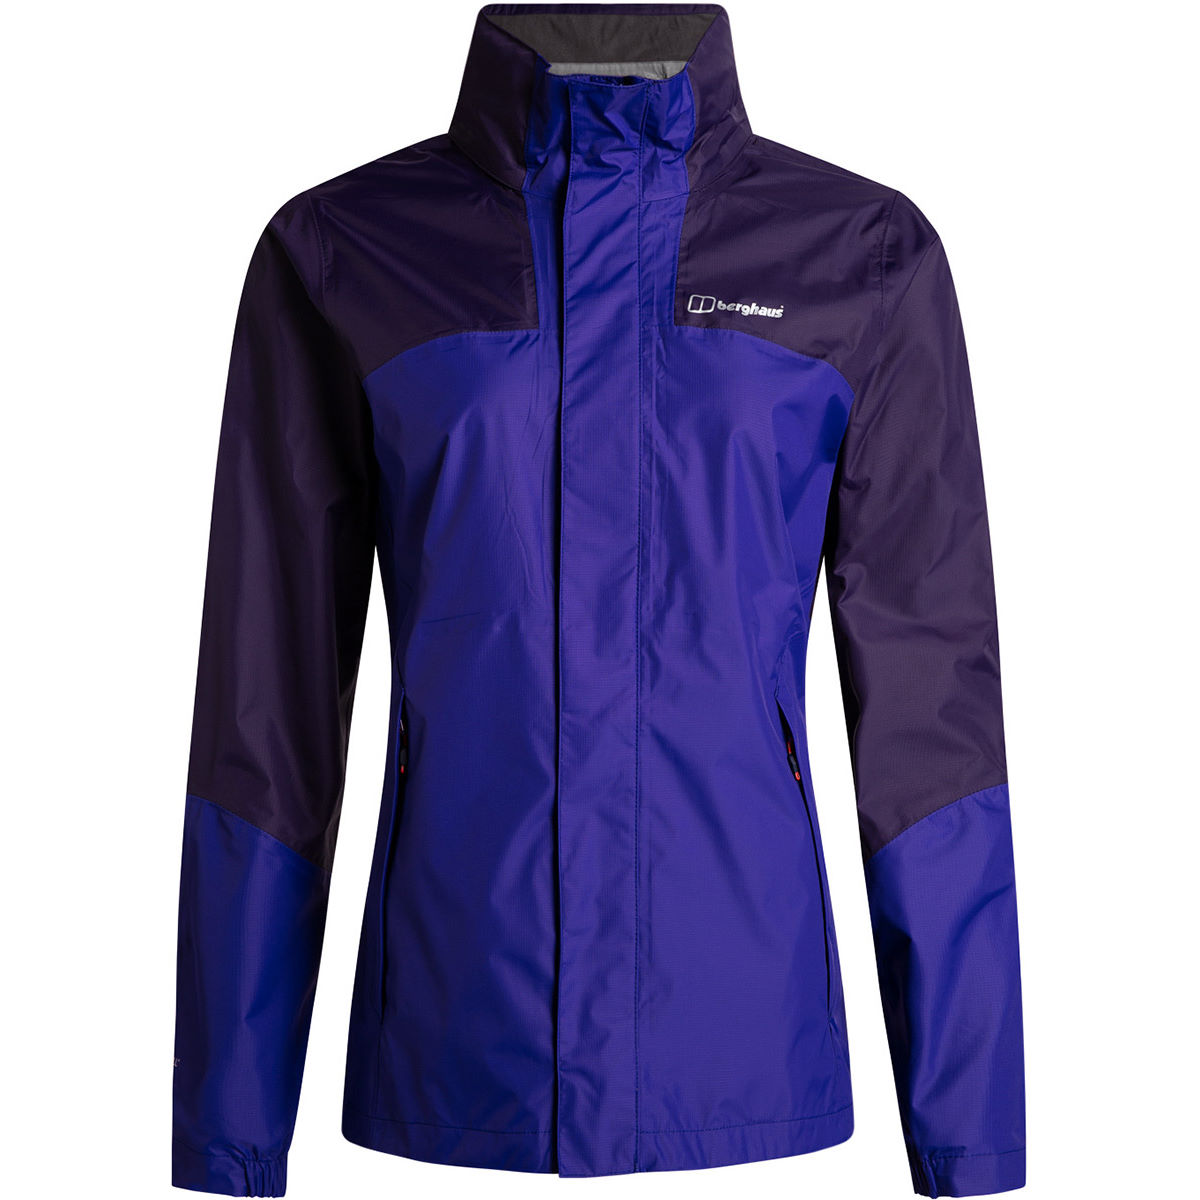 Berghaus Berghaus Womens Orestina Waterproof Jacket   Jackets